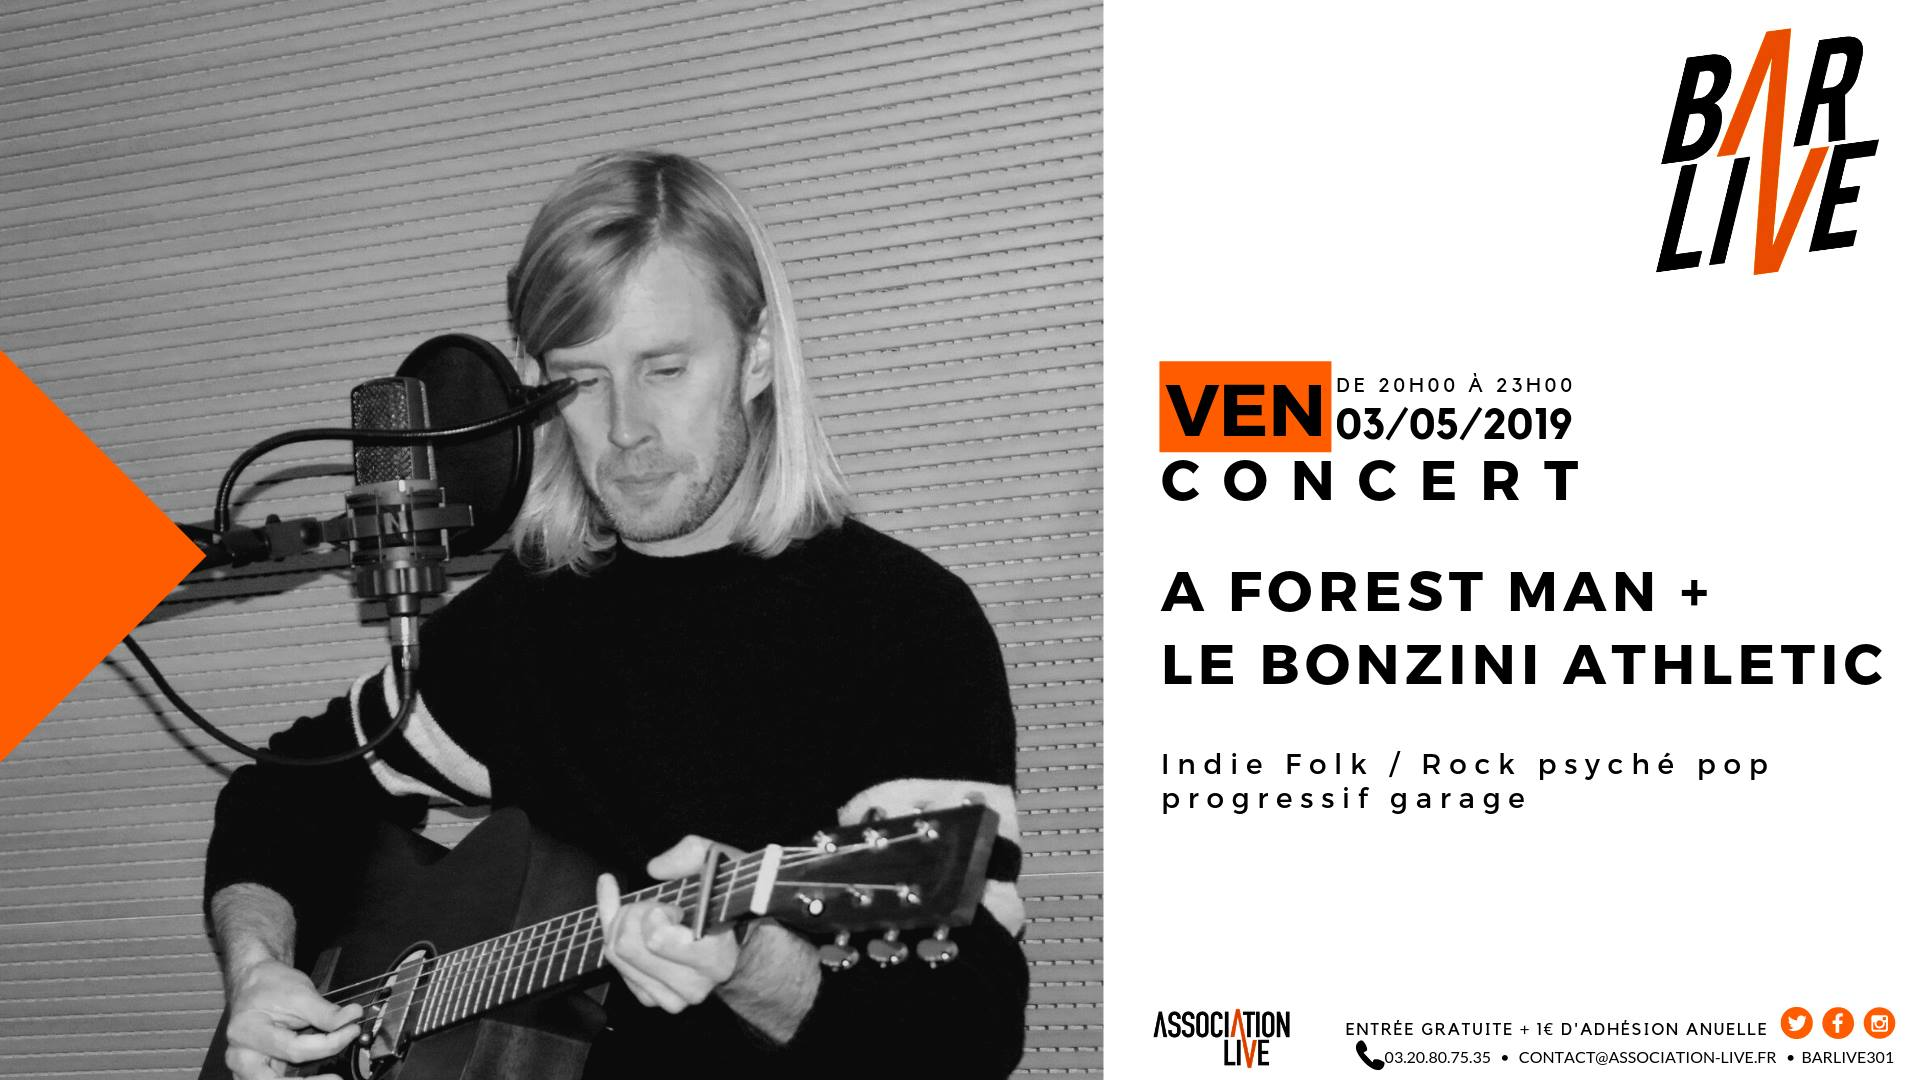 A forest man + le bonzini athletic @barlive